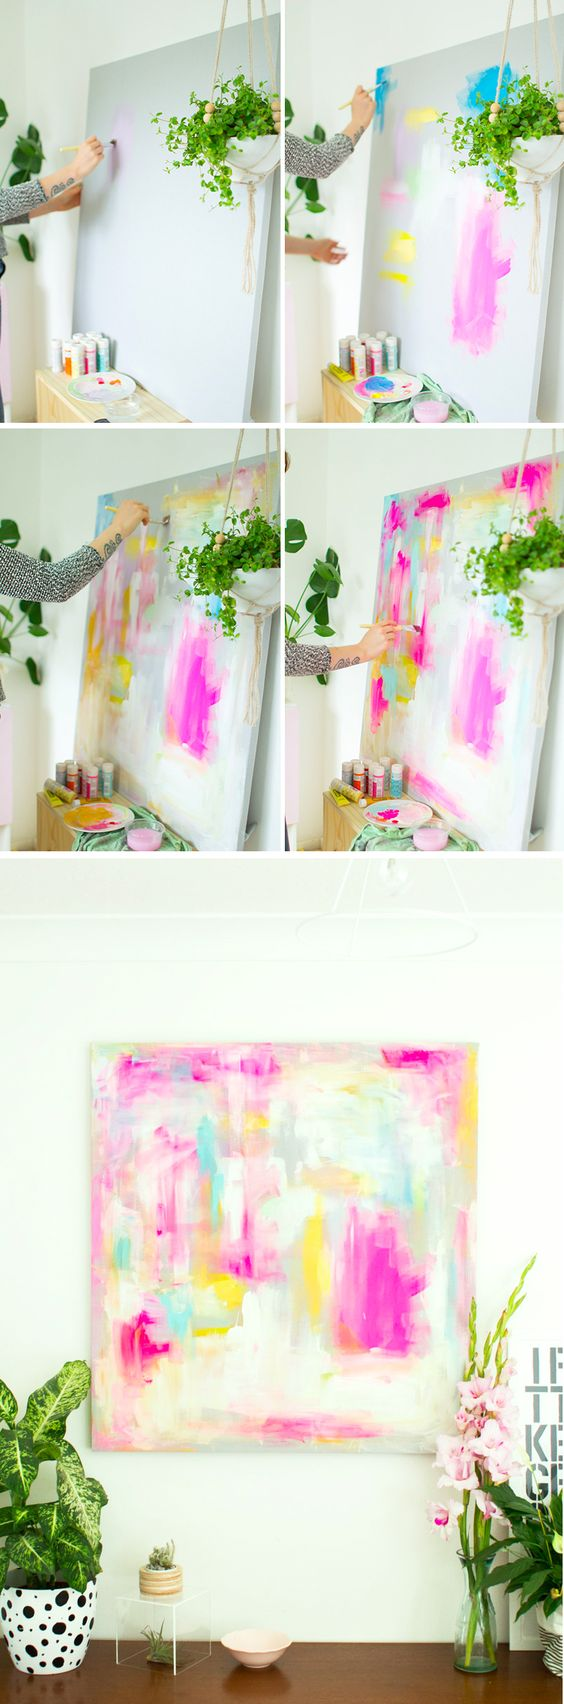 DIY Abstract Artwork - Furniture Hacks Tutorial: